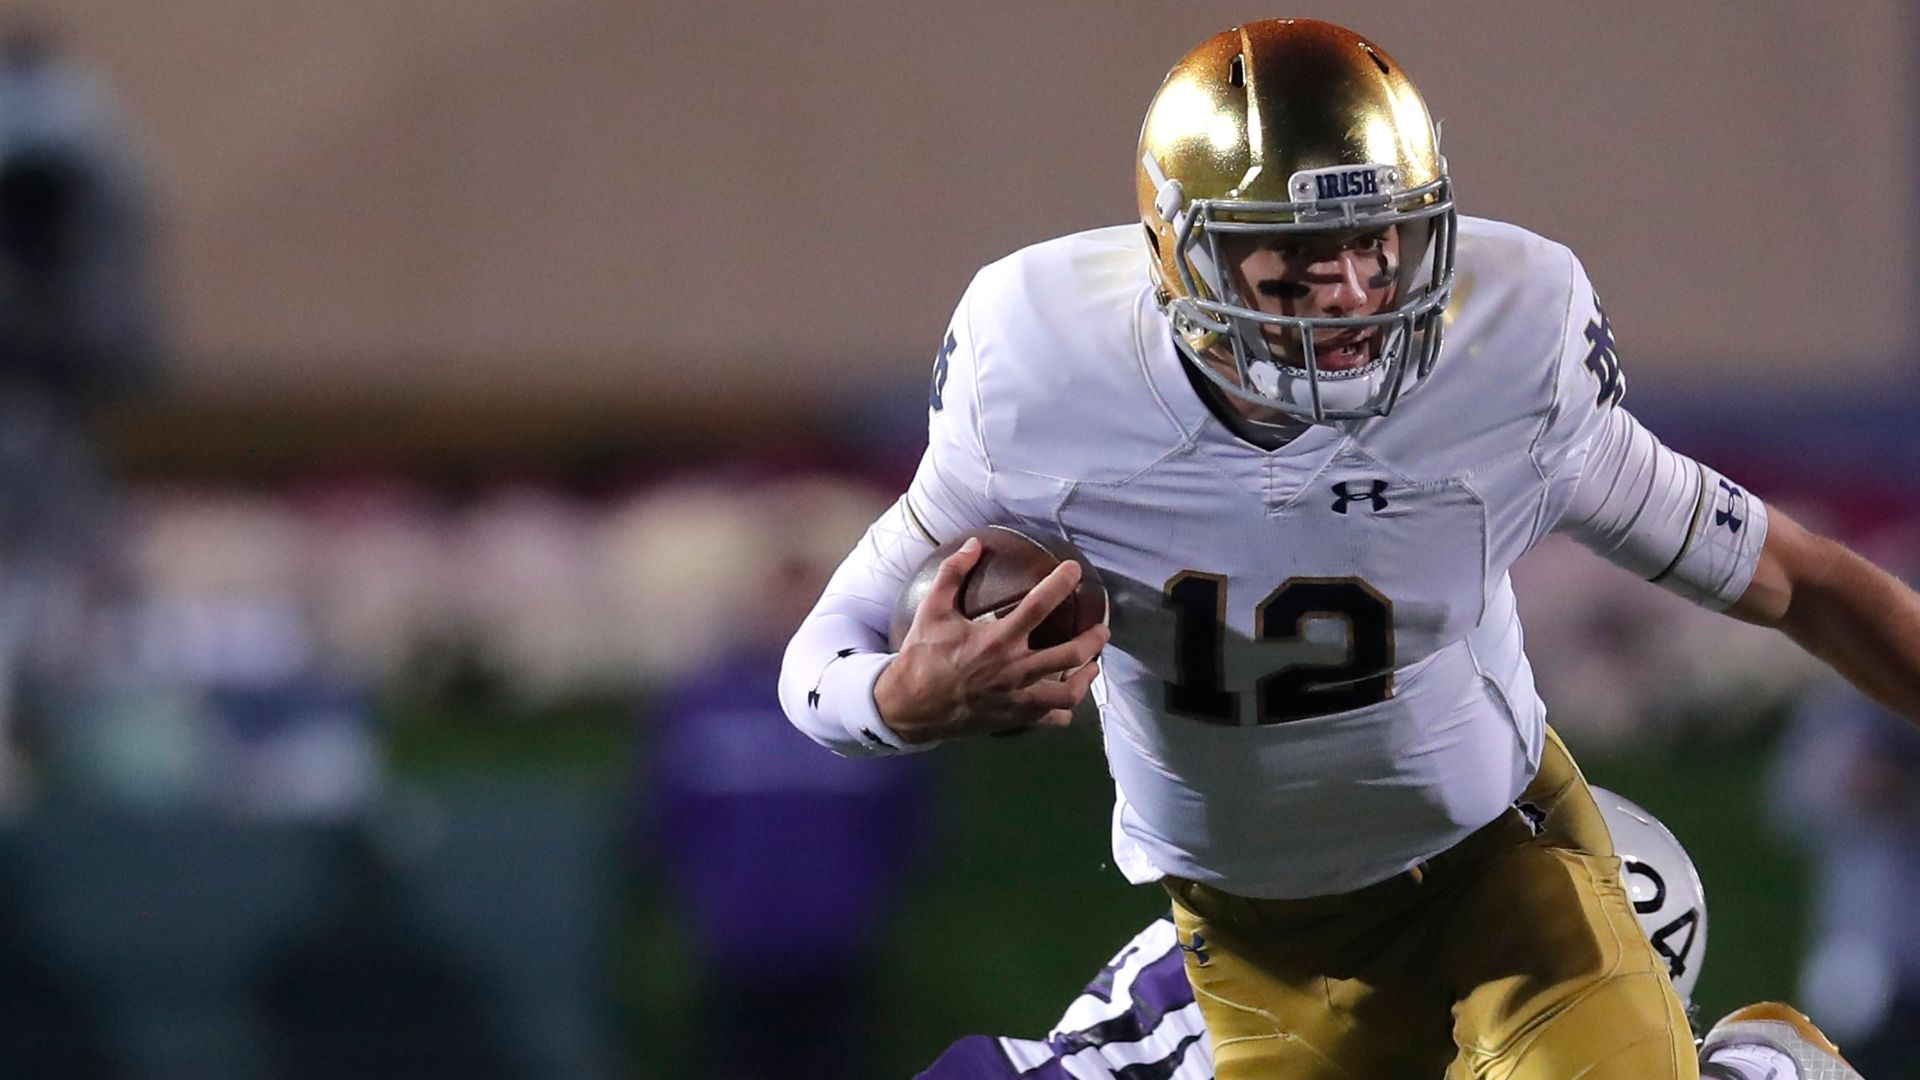 Notre Dame pulls away from Northwestern to remain unbeaten